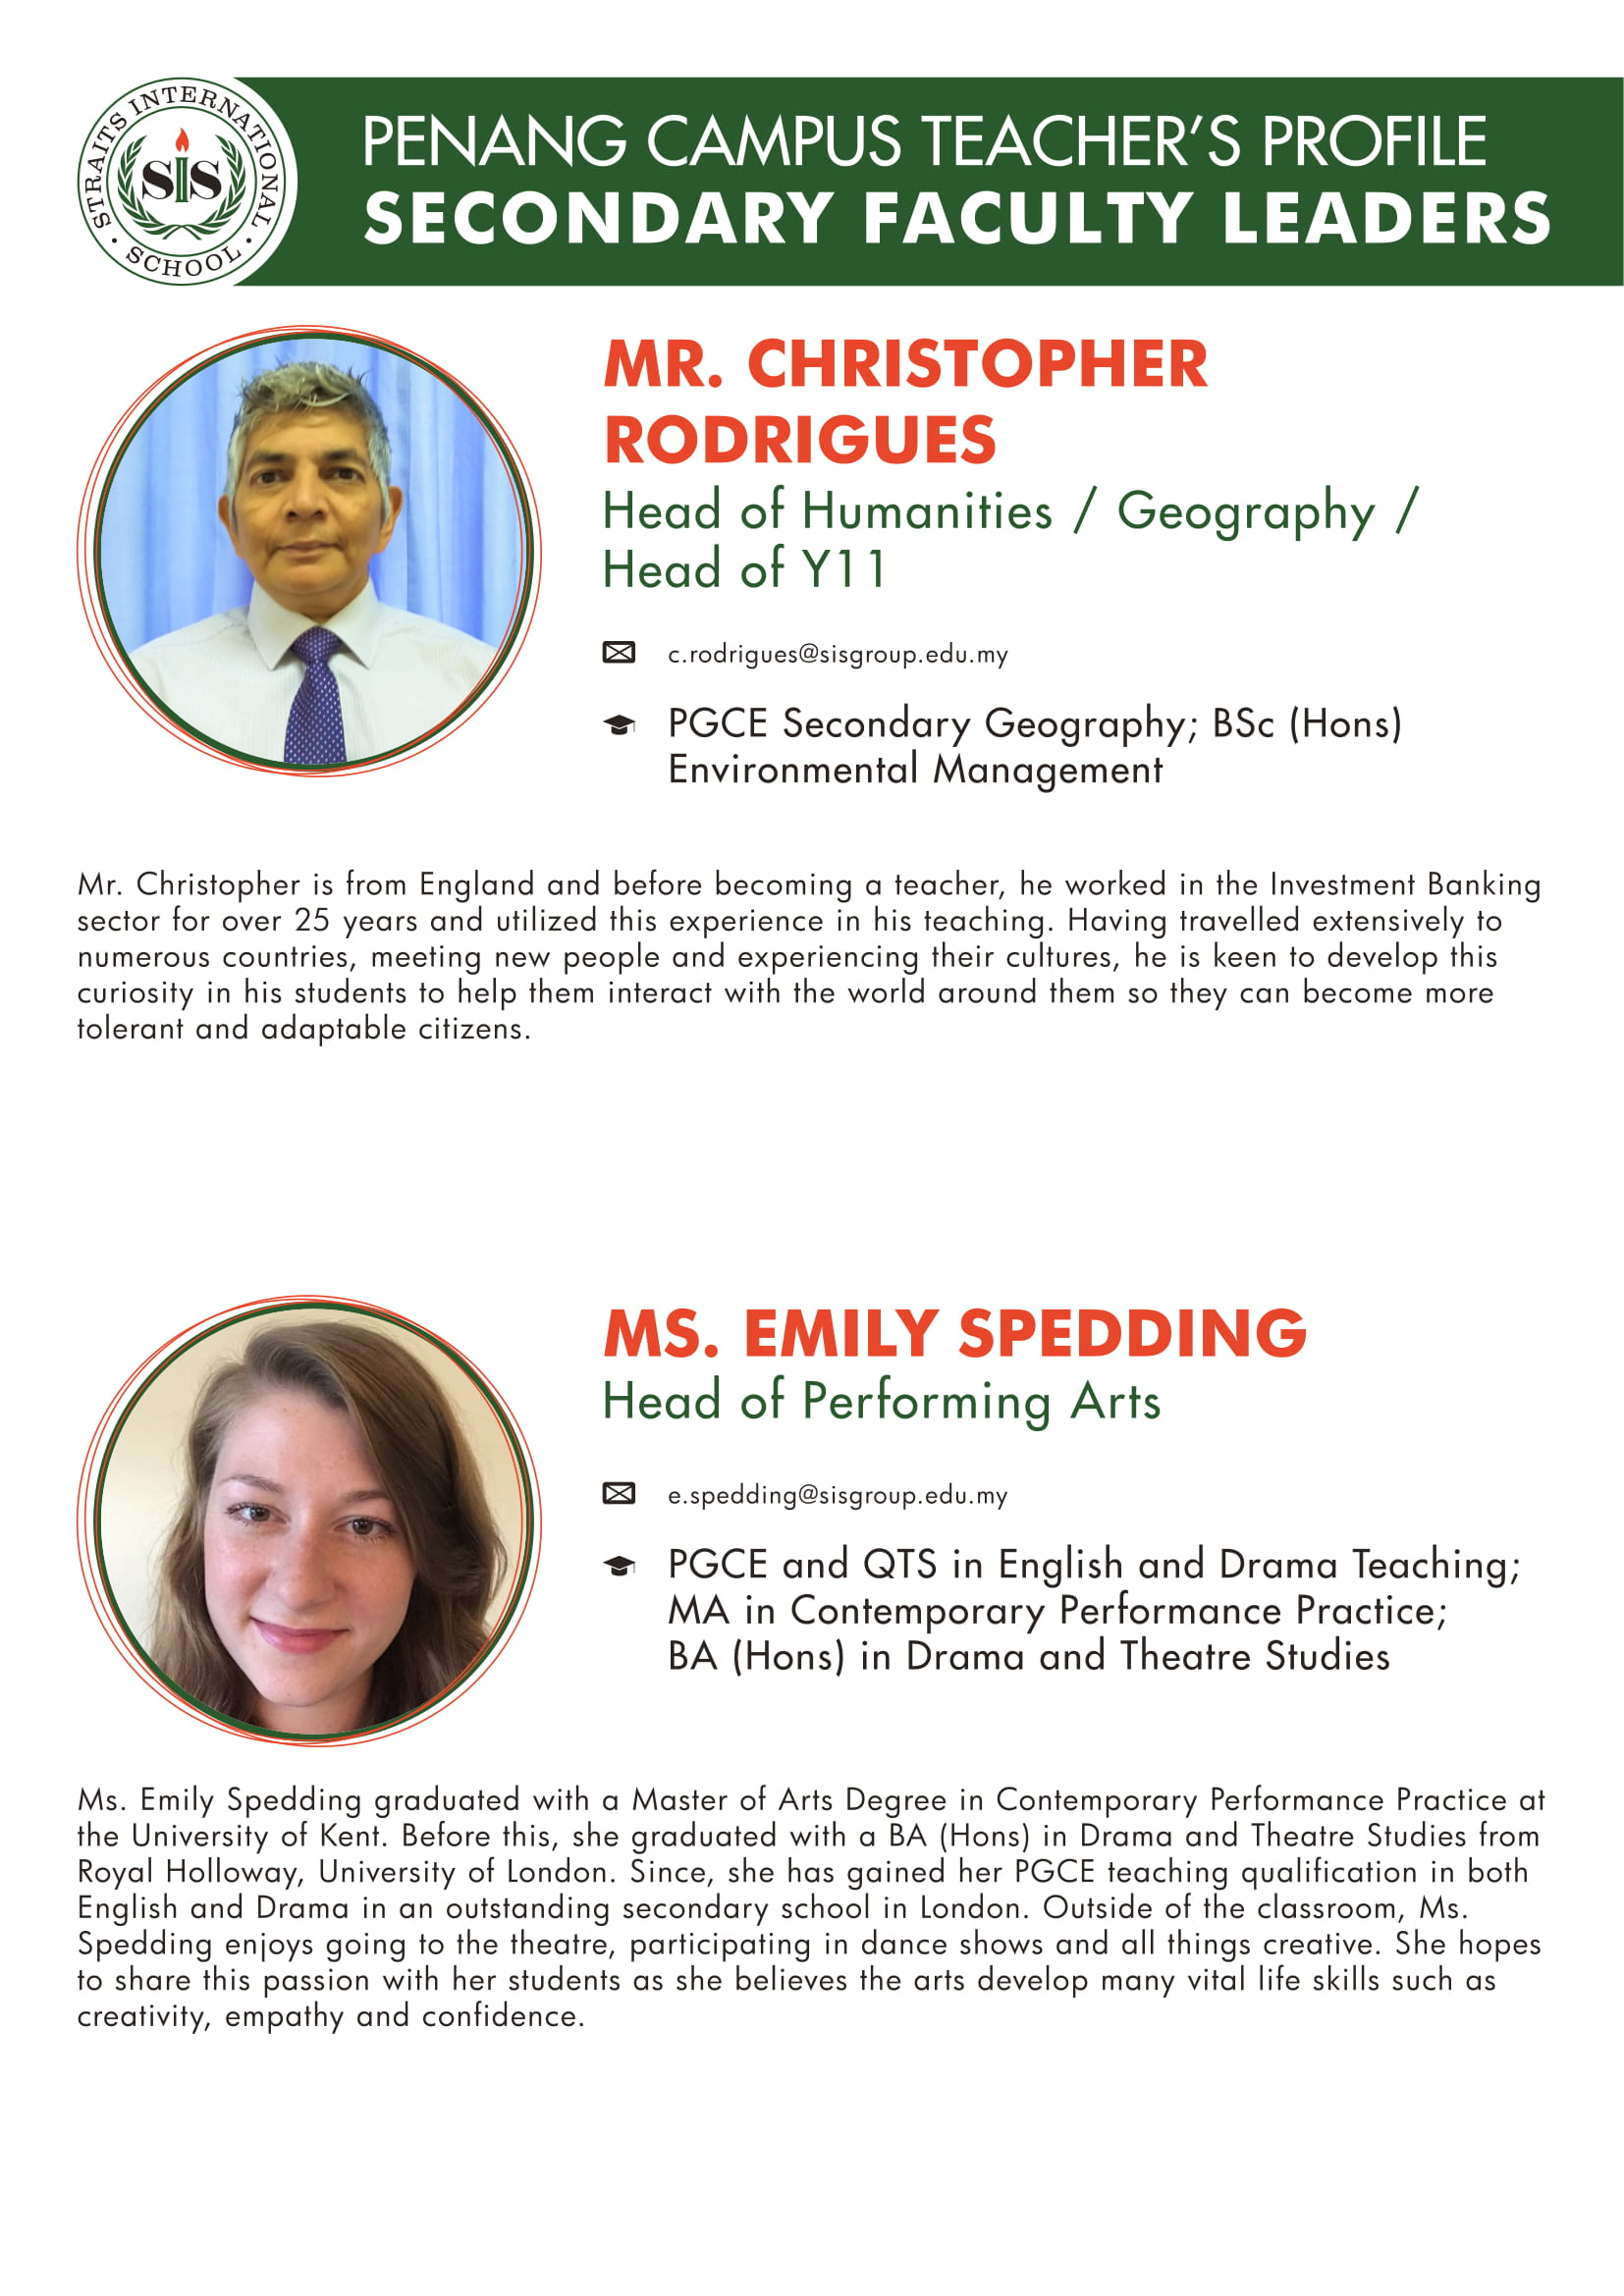 Mr. Christopher Rodrigues and Ms. Emily Spedding teacher profile